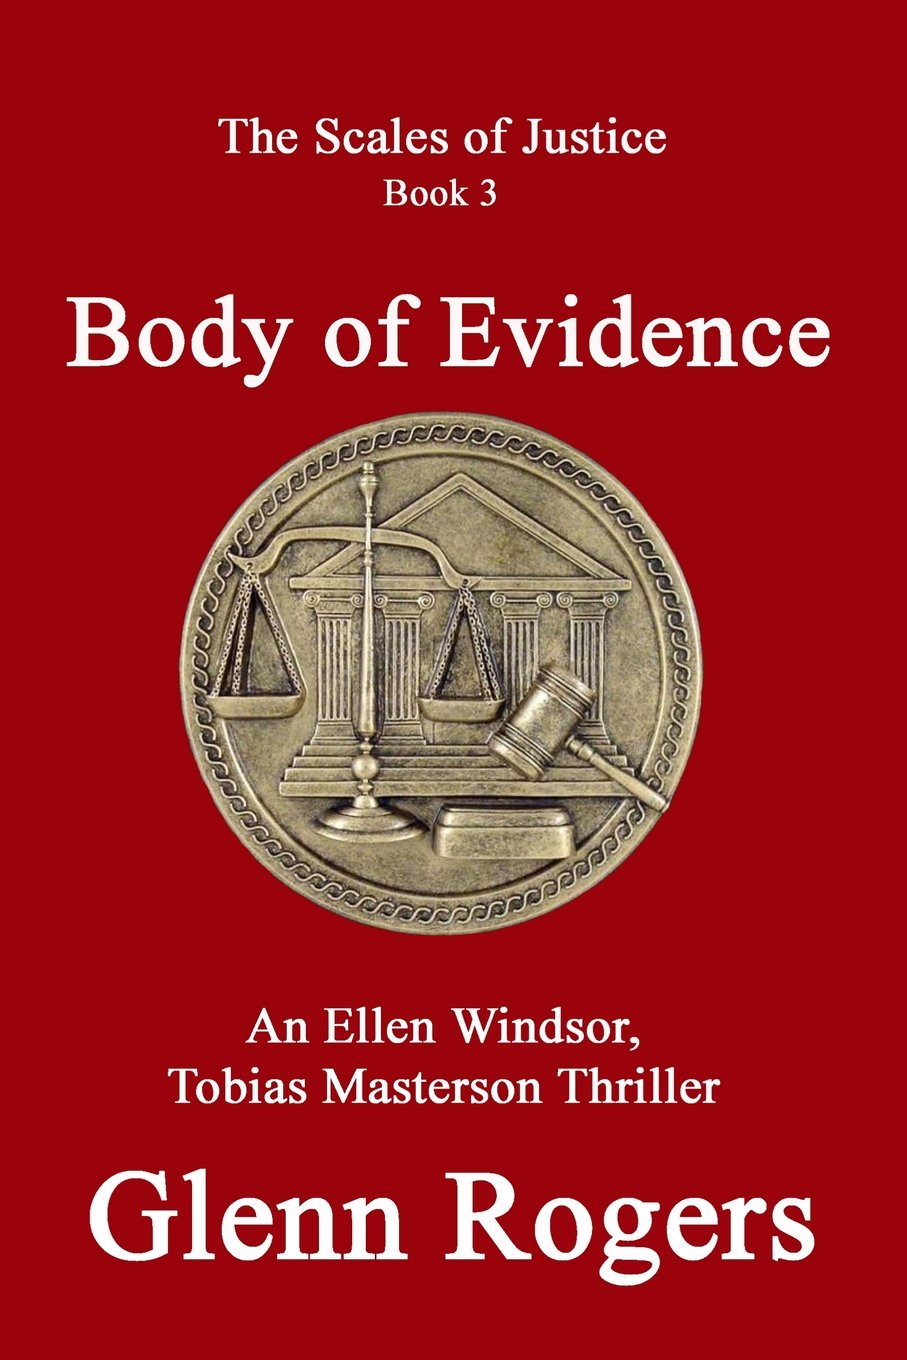 Body of Evidence: An Ellen Windsor, Tobias Masterson Thriller (Scales of Justice) PDF